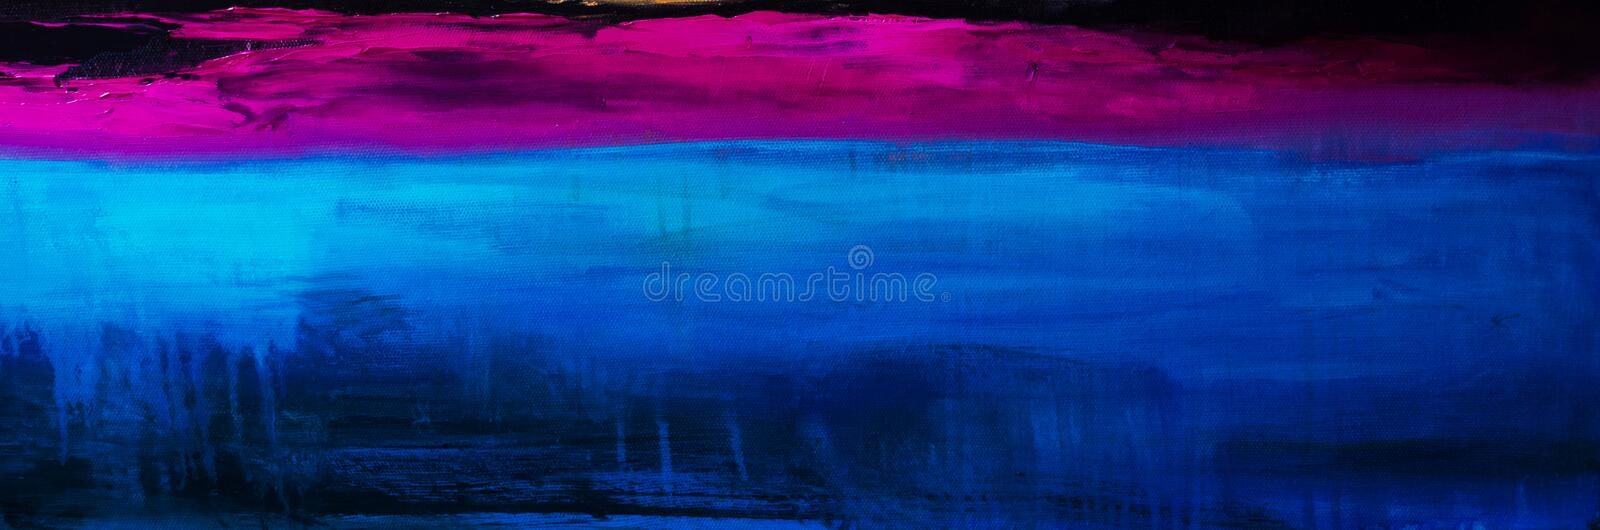 Colorful Abstract oil painting background. Oil on canvas texture stock illustration